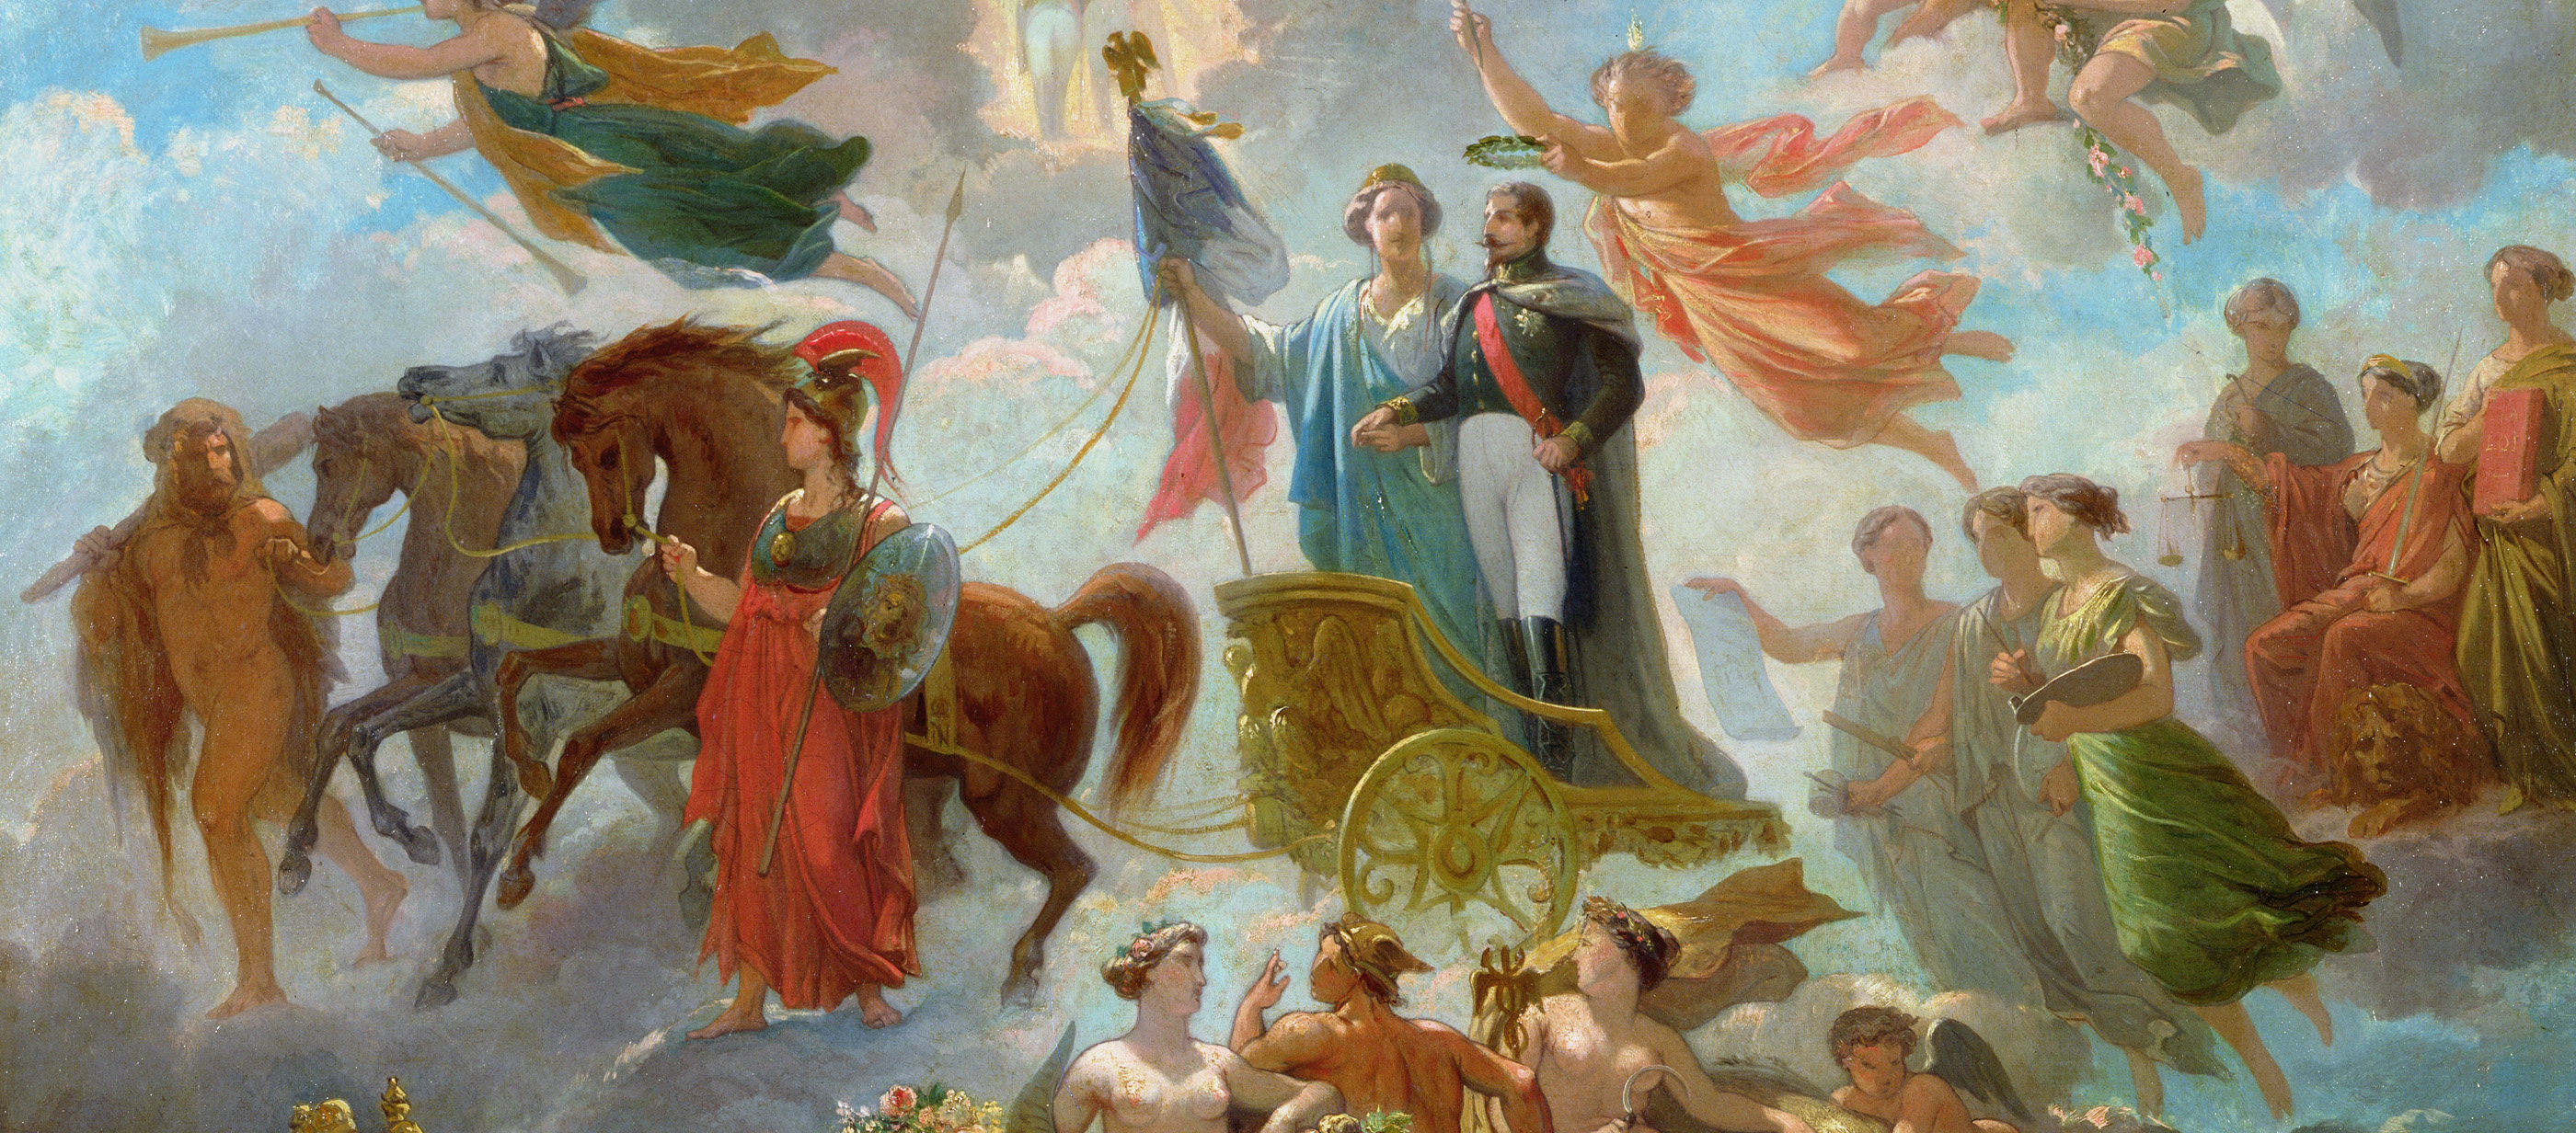 Apotheosis of Napoleon III, by Guillaume-Alphonse Harang Cabasson, 1854. Musée Compiègne, France.